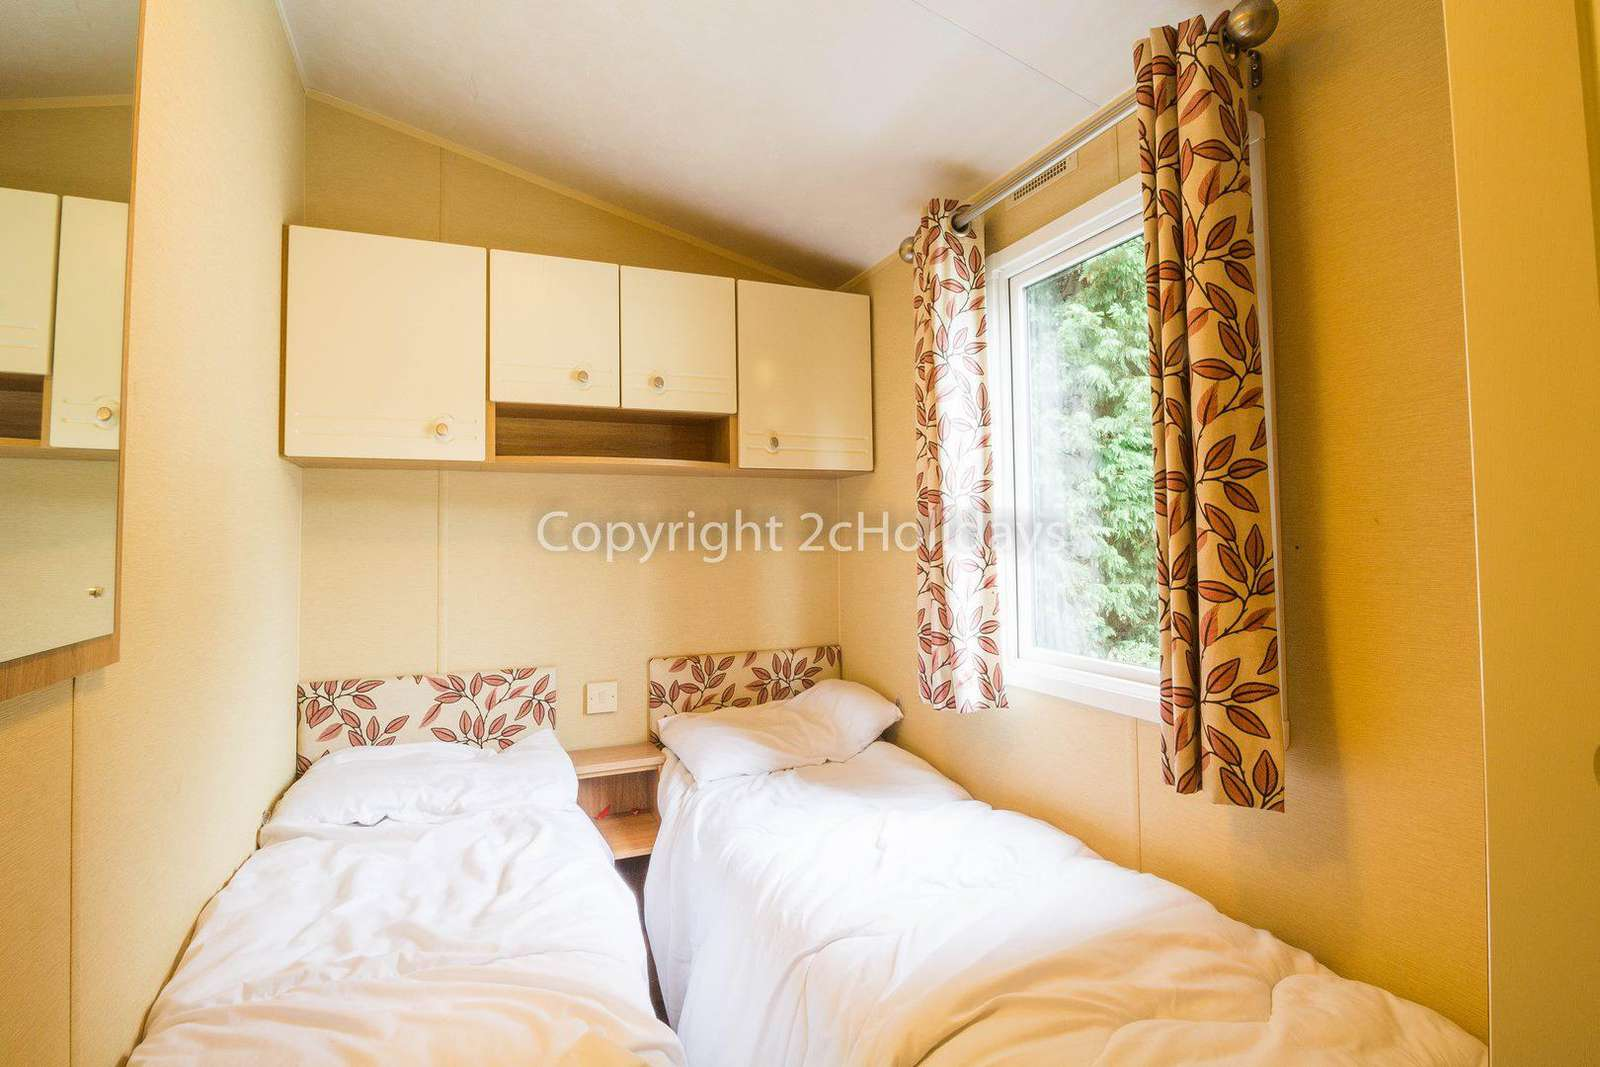 So many families have enjoyed a great break in this 8 berth luxury caravan at Wild Duck Holiday Park.